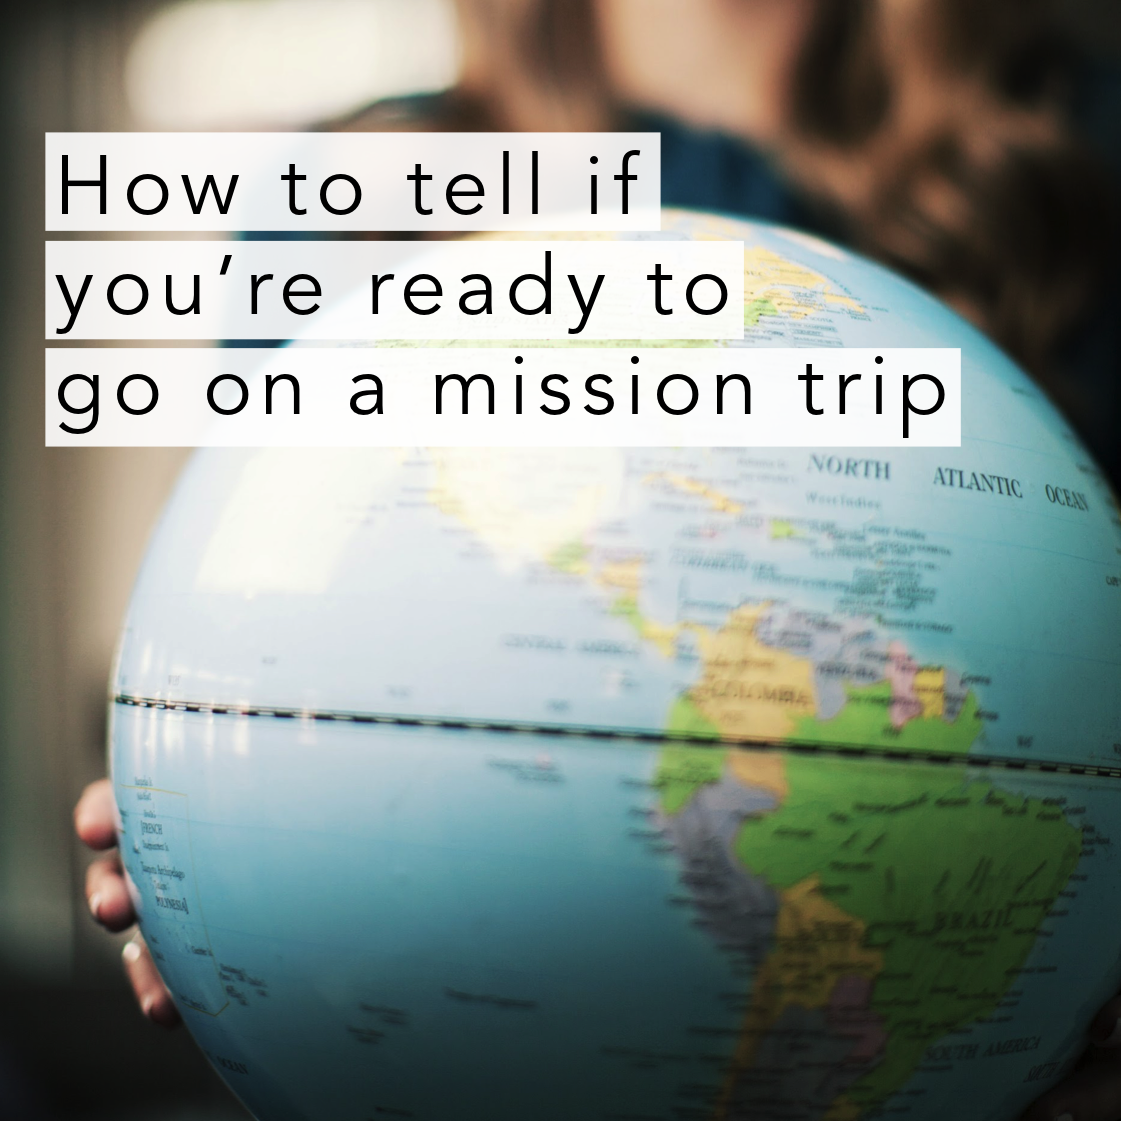 Mission Trip Quotes How To Tell If You're Ready To Go On A Mission Trip  Mission